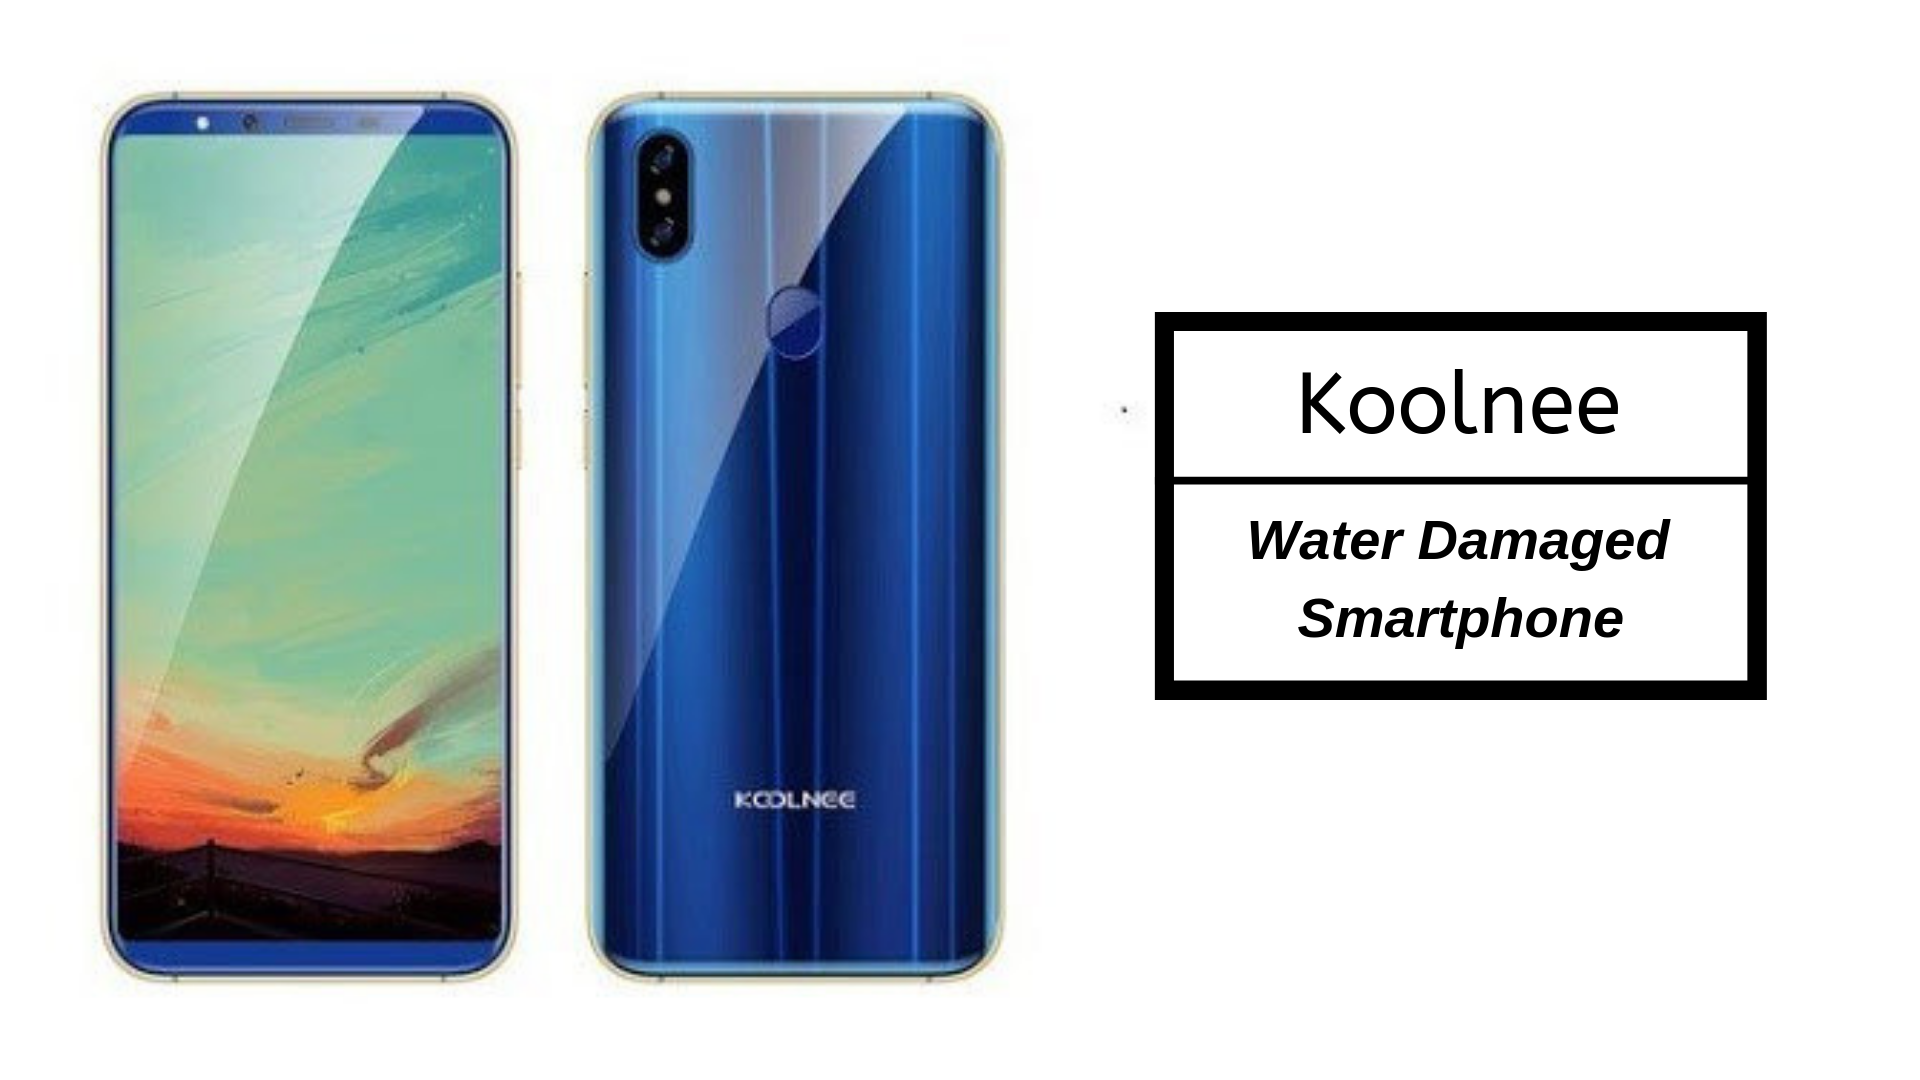 How To Fix Koolnee Water Damaged Smartphone [Quick Guide]